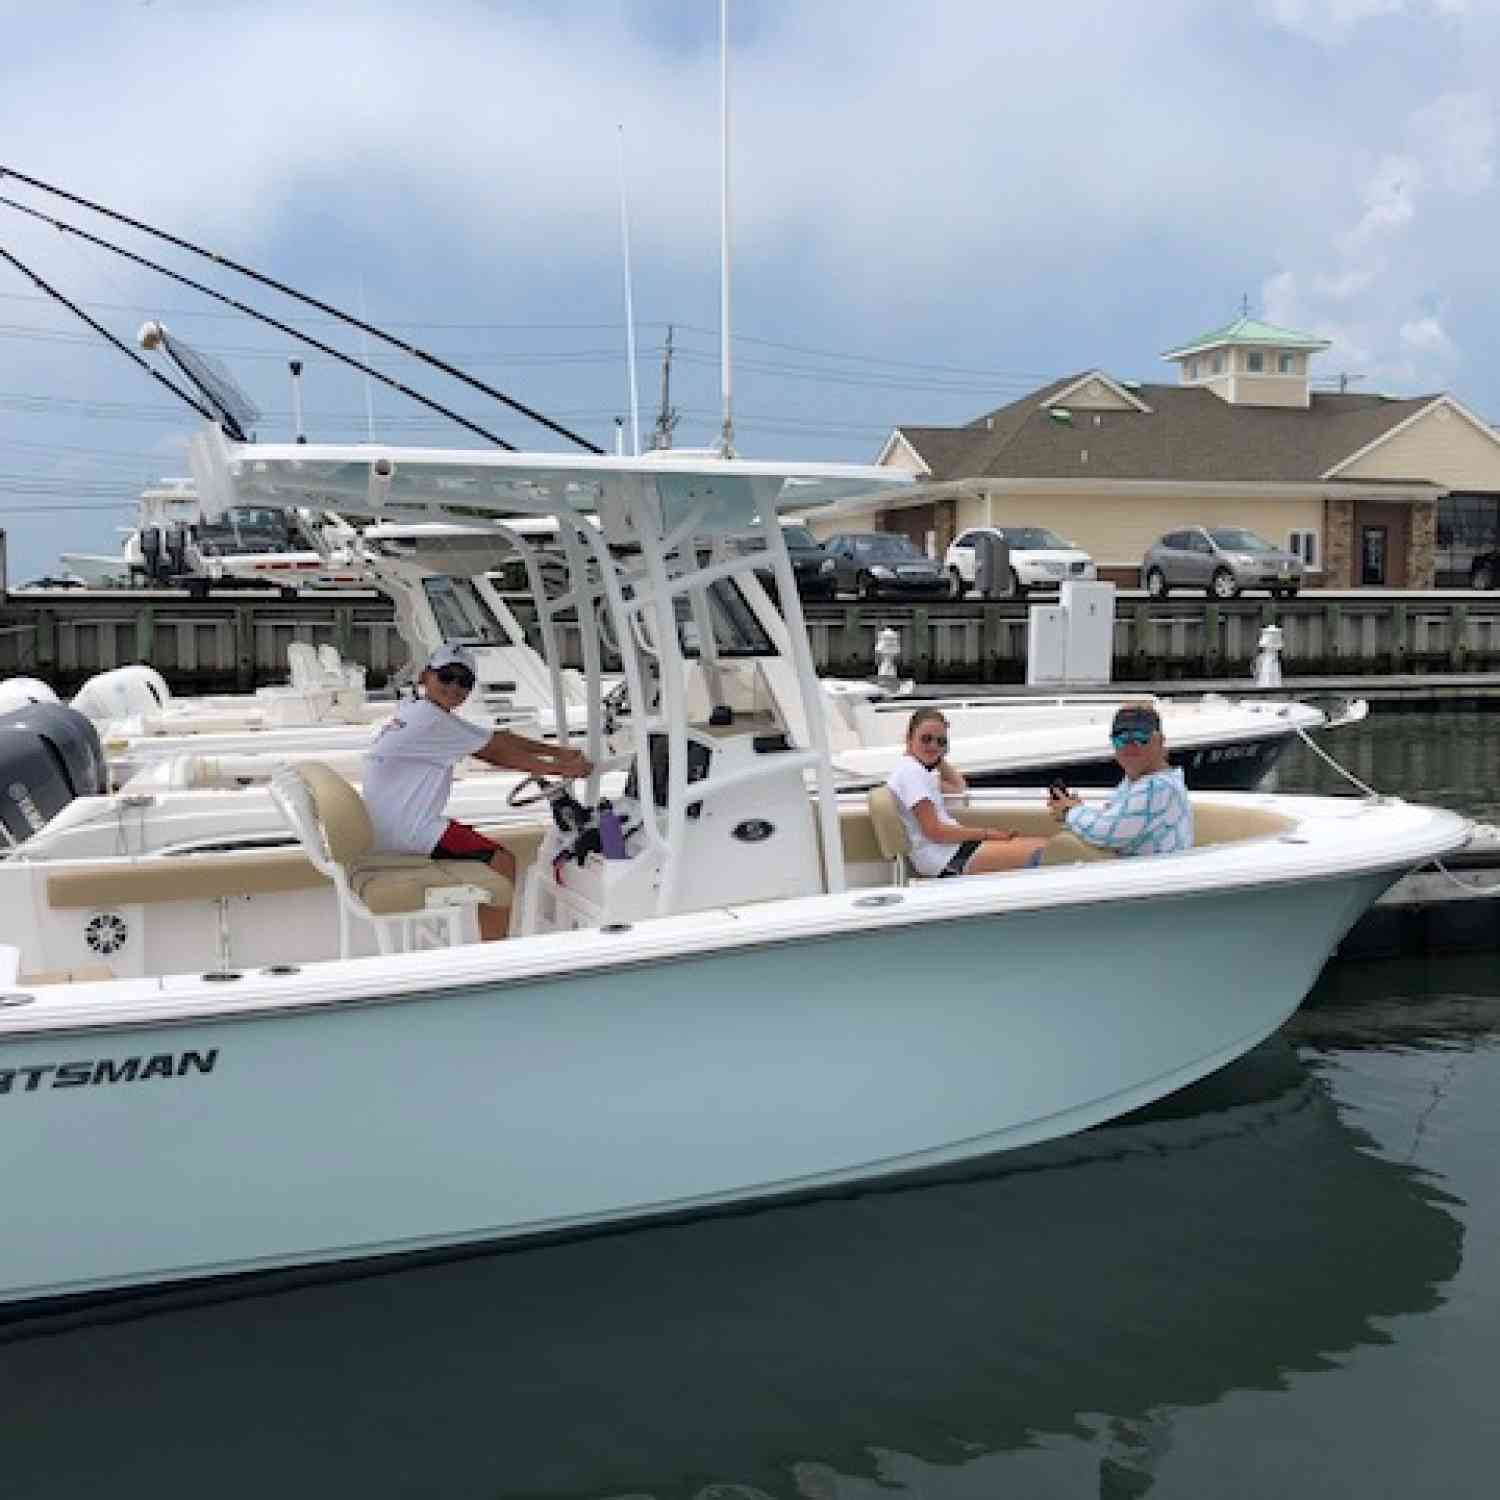 Title: 232 open - On board their Sportsman Open 232 Center Console - Location: Stone Harbor, NJ. Participating in the Photo Contest #SportsmanAugust2018